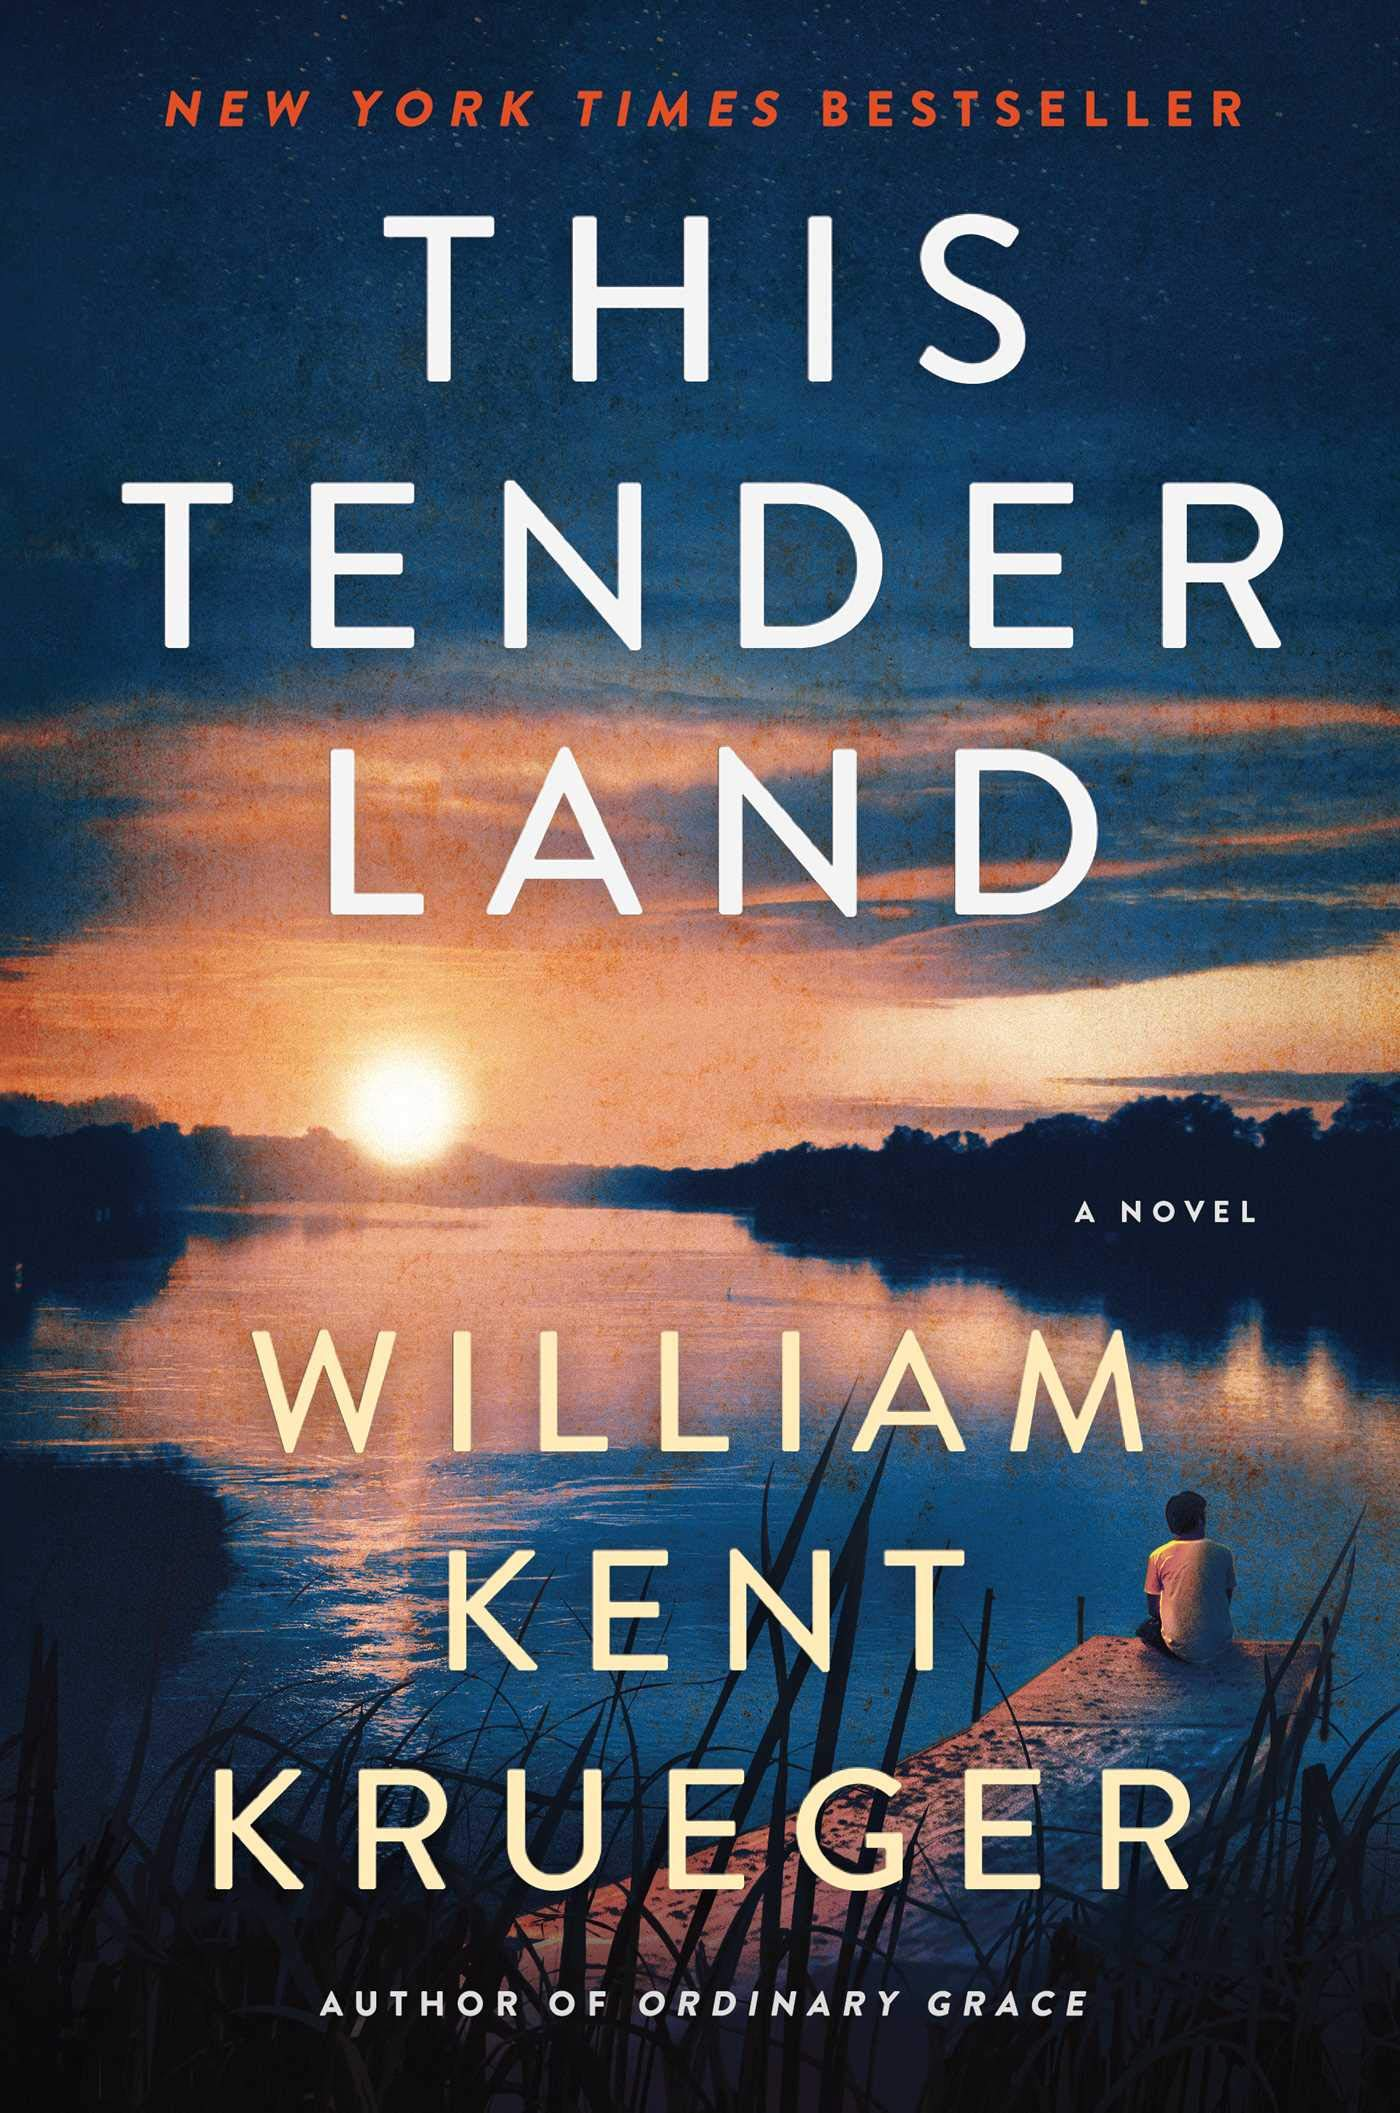 Amazon.com: This Tender Land: A Novel (9781476749297): Krueger ...